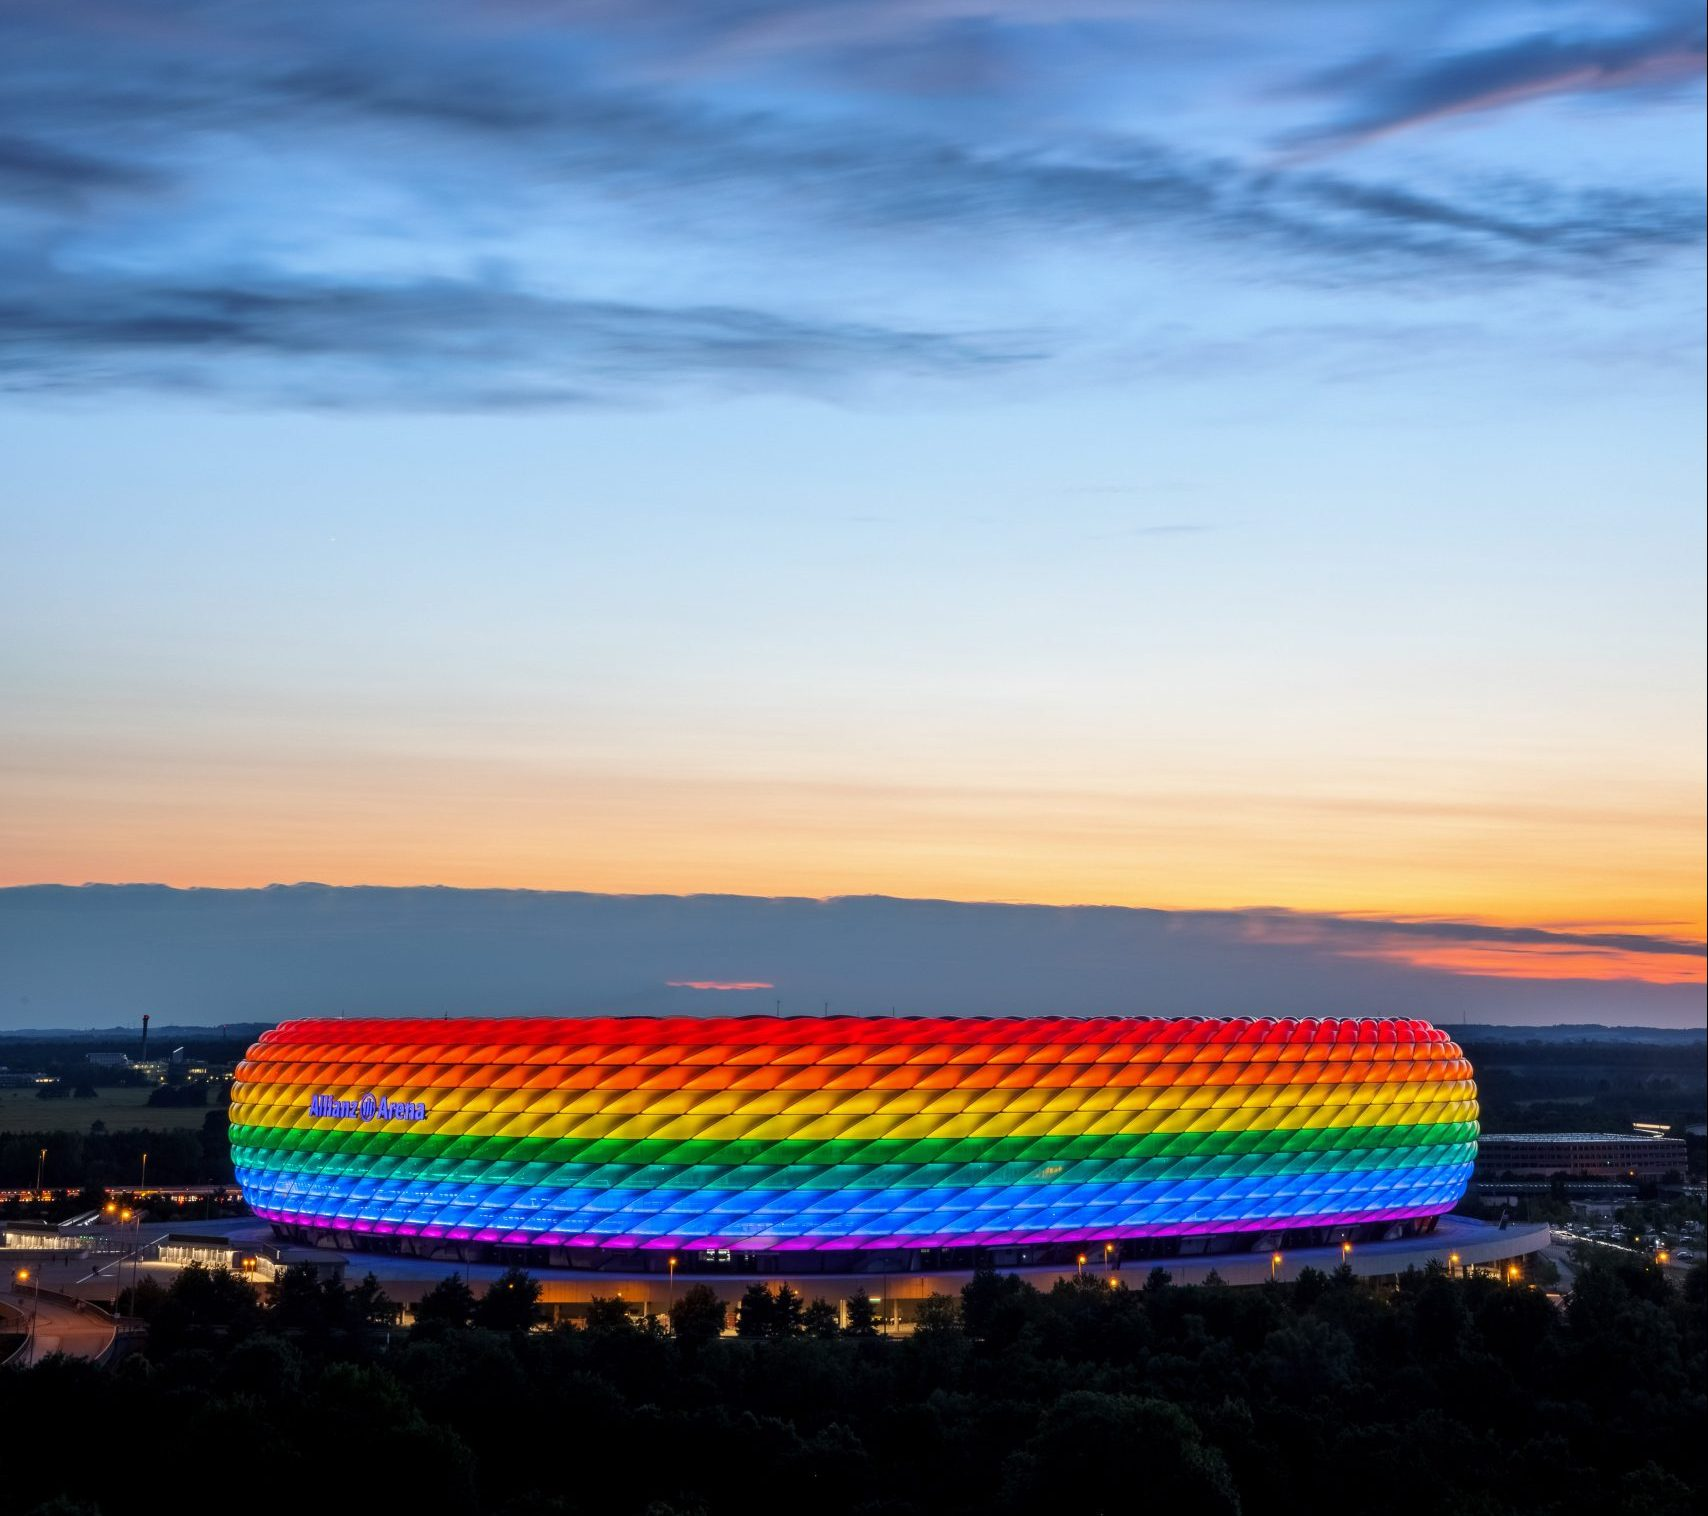 Three weeks after plans to light up Munich's Allianz Arena in rainbow colours caused a major international row, the stadium has finally got the multi-coloured treatment